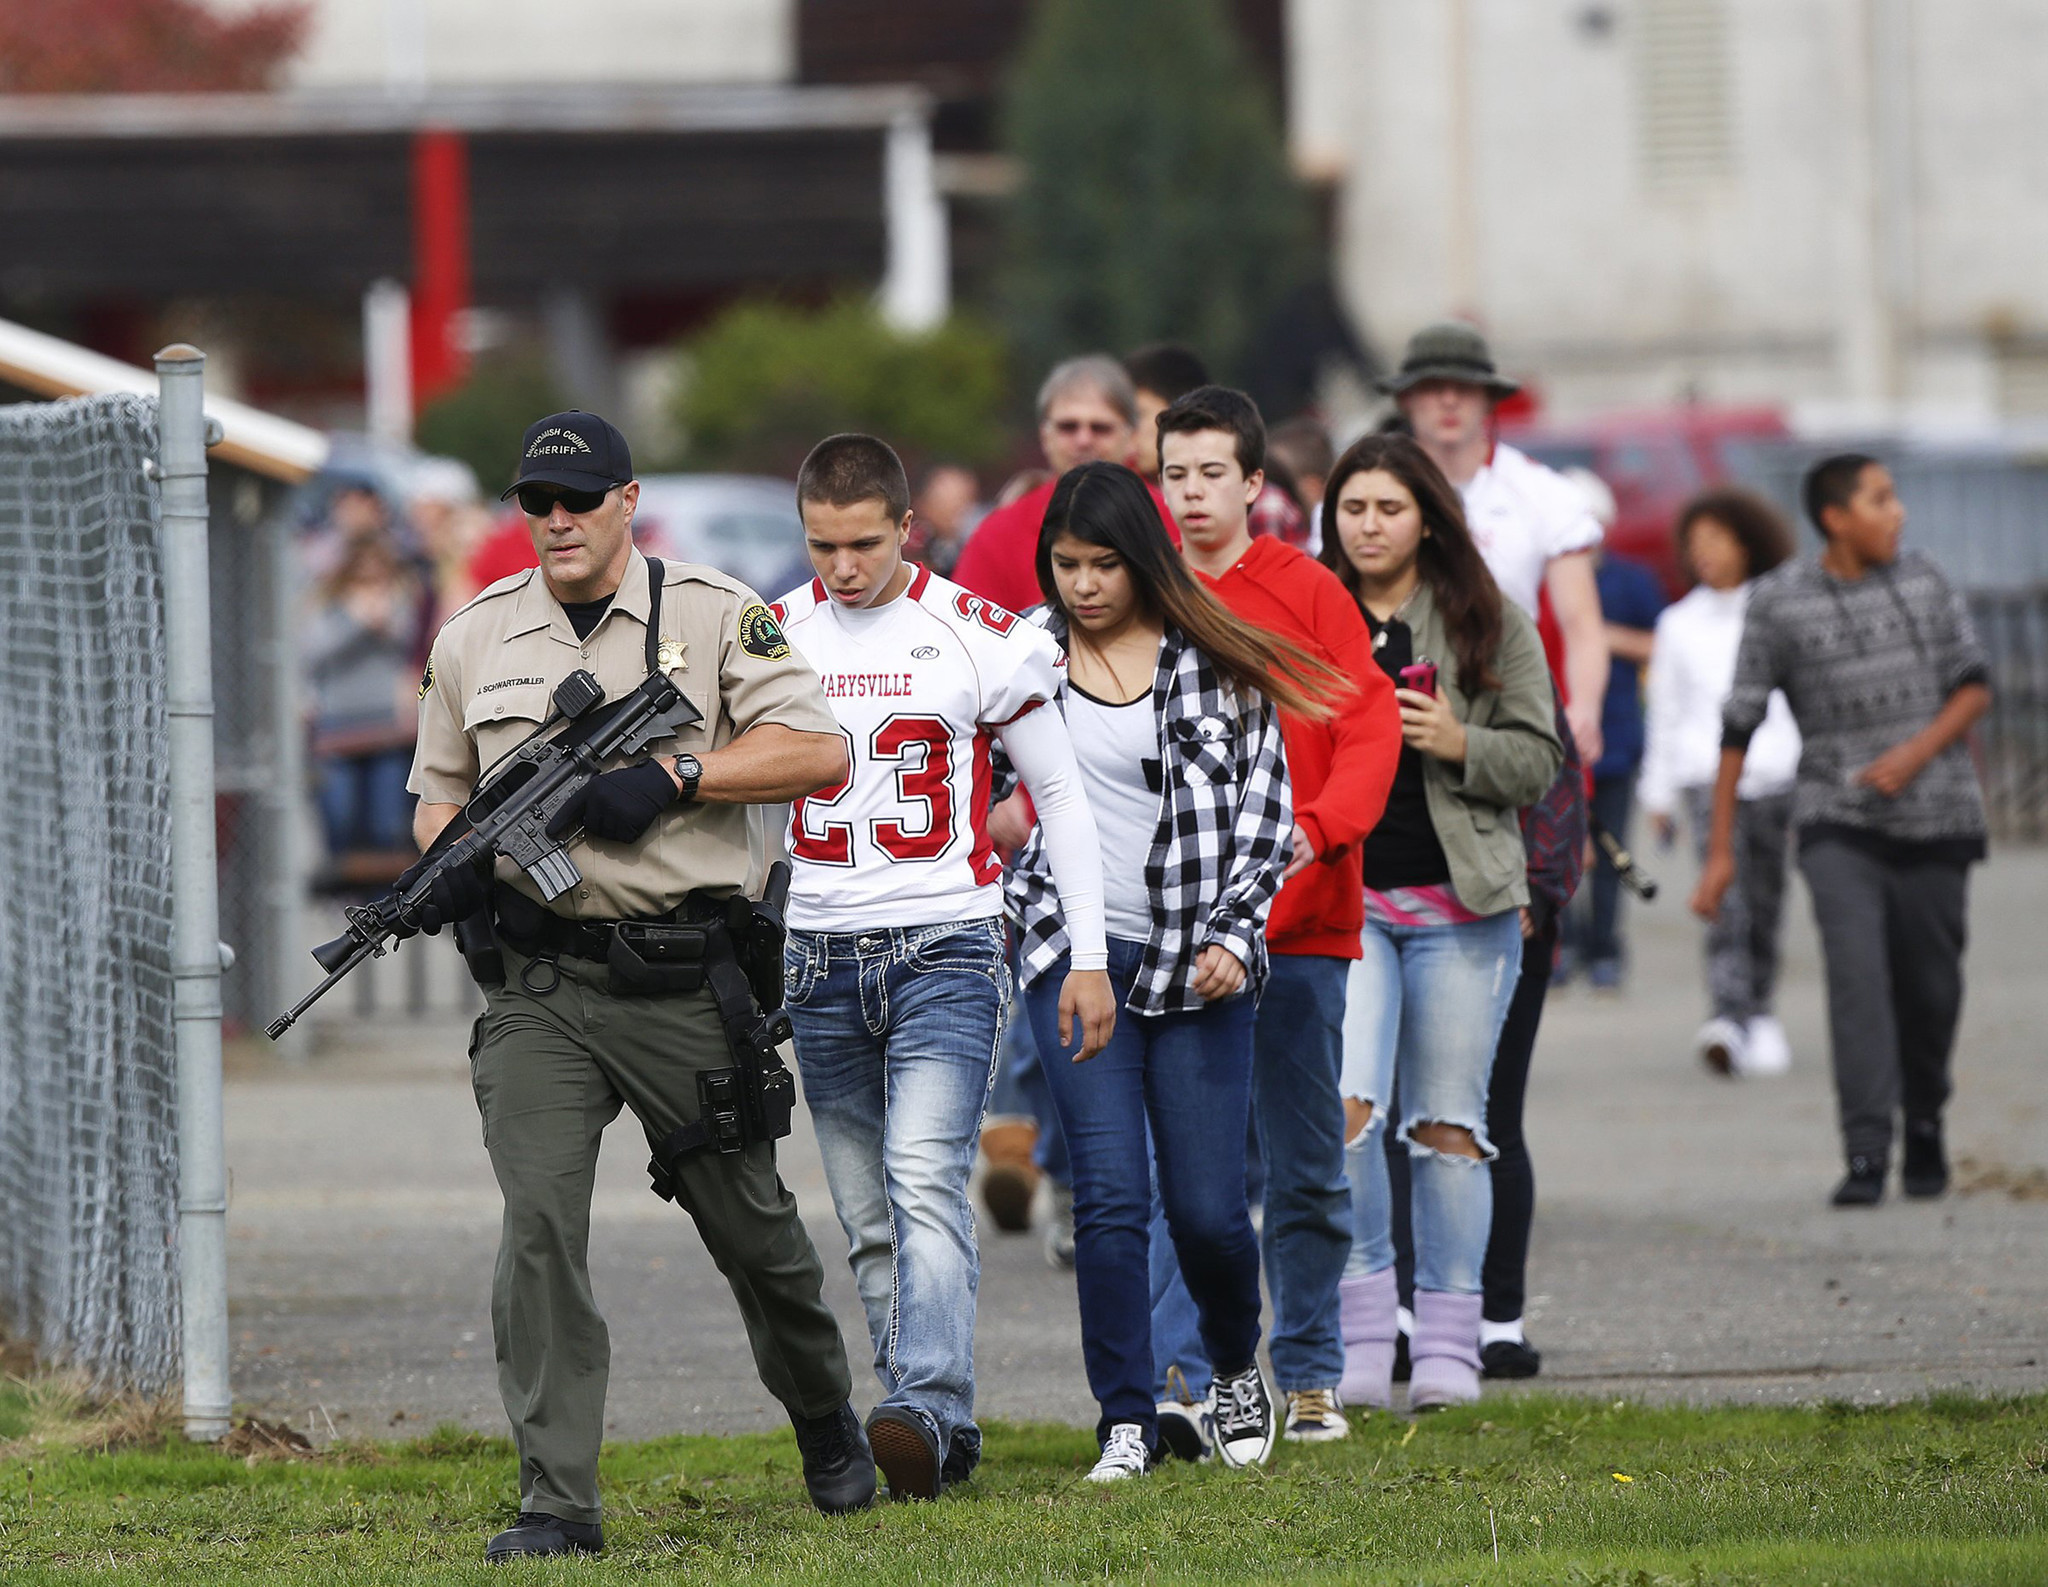 """an analysis of the high school shootings in the usa Perhaps the most notorious school massacre was at columbine high school it  was here, in 1999,  essay on mass school shootings in america - """"that could."""